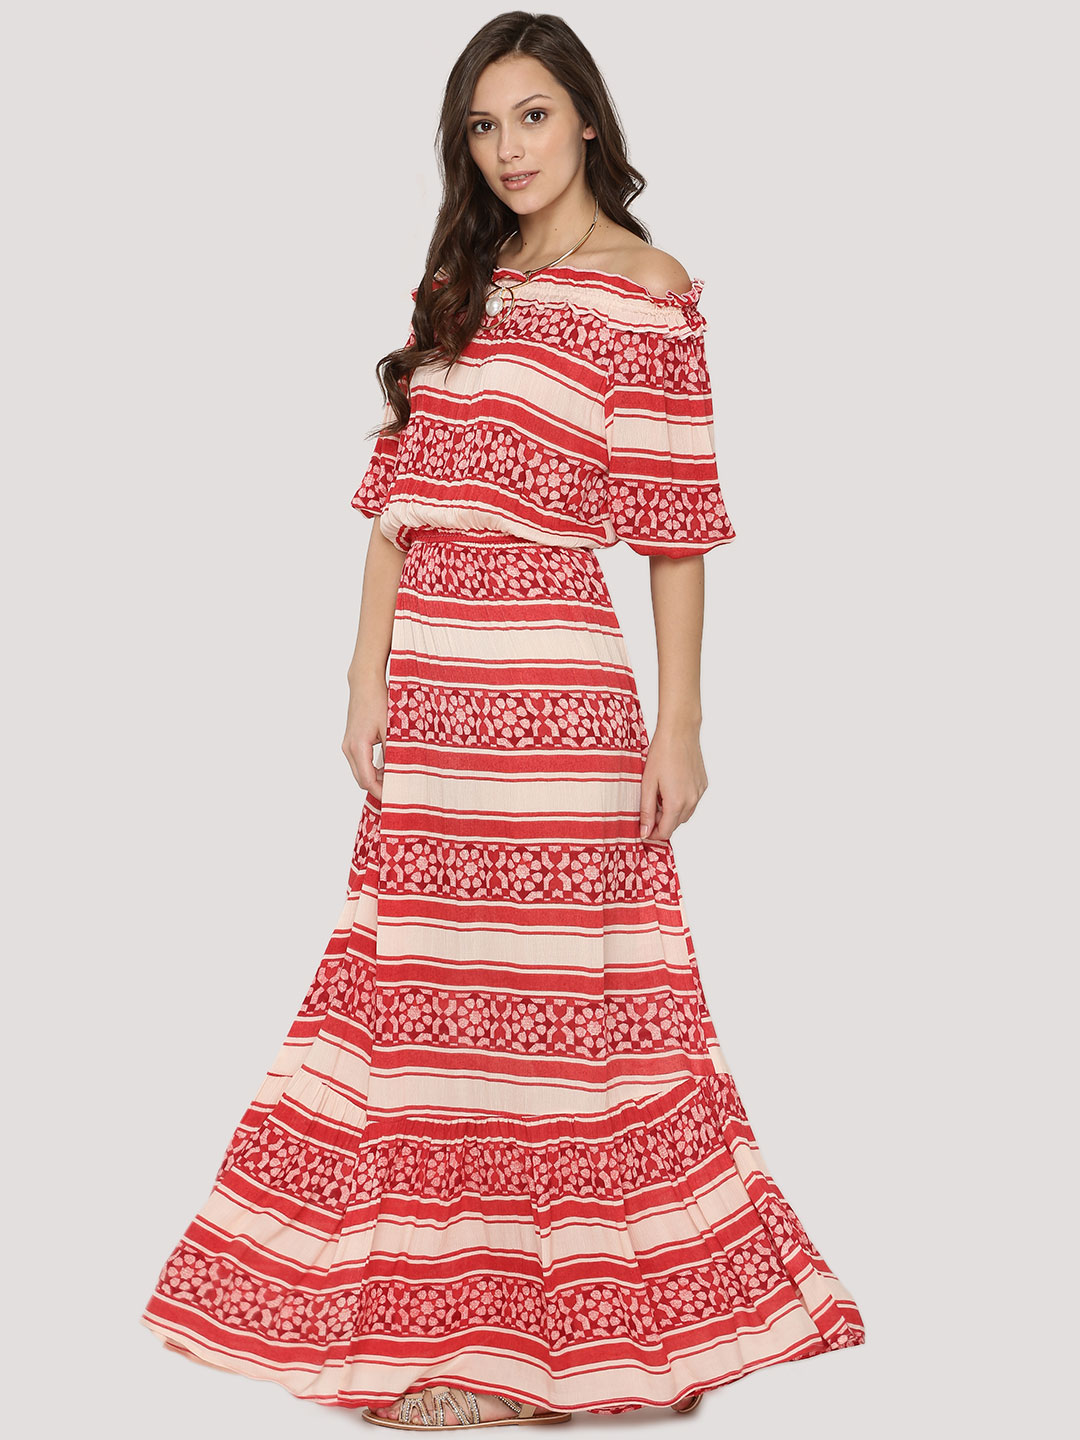 Rena Love Print Printed Maxi Dress 1